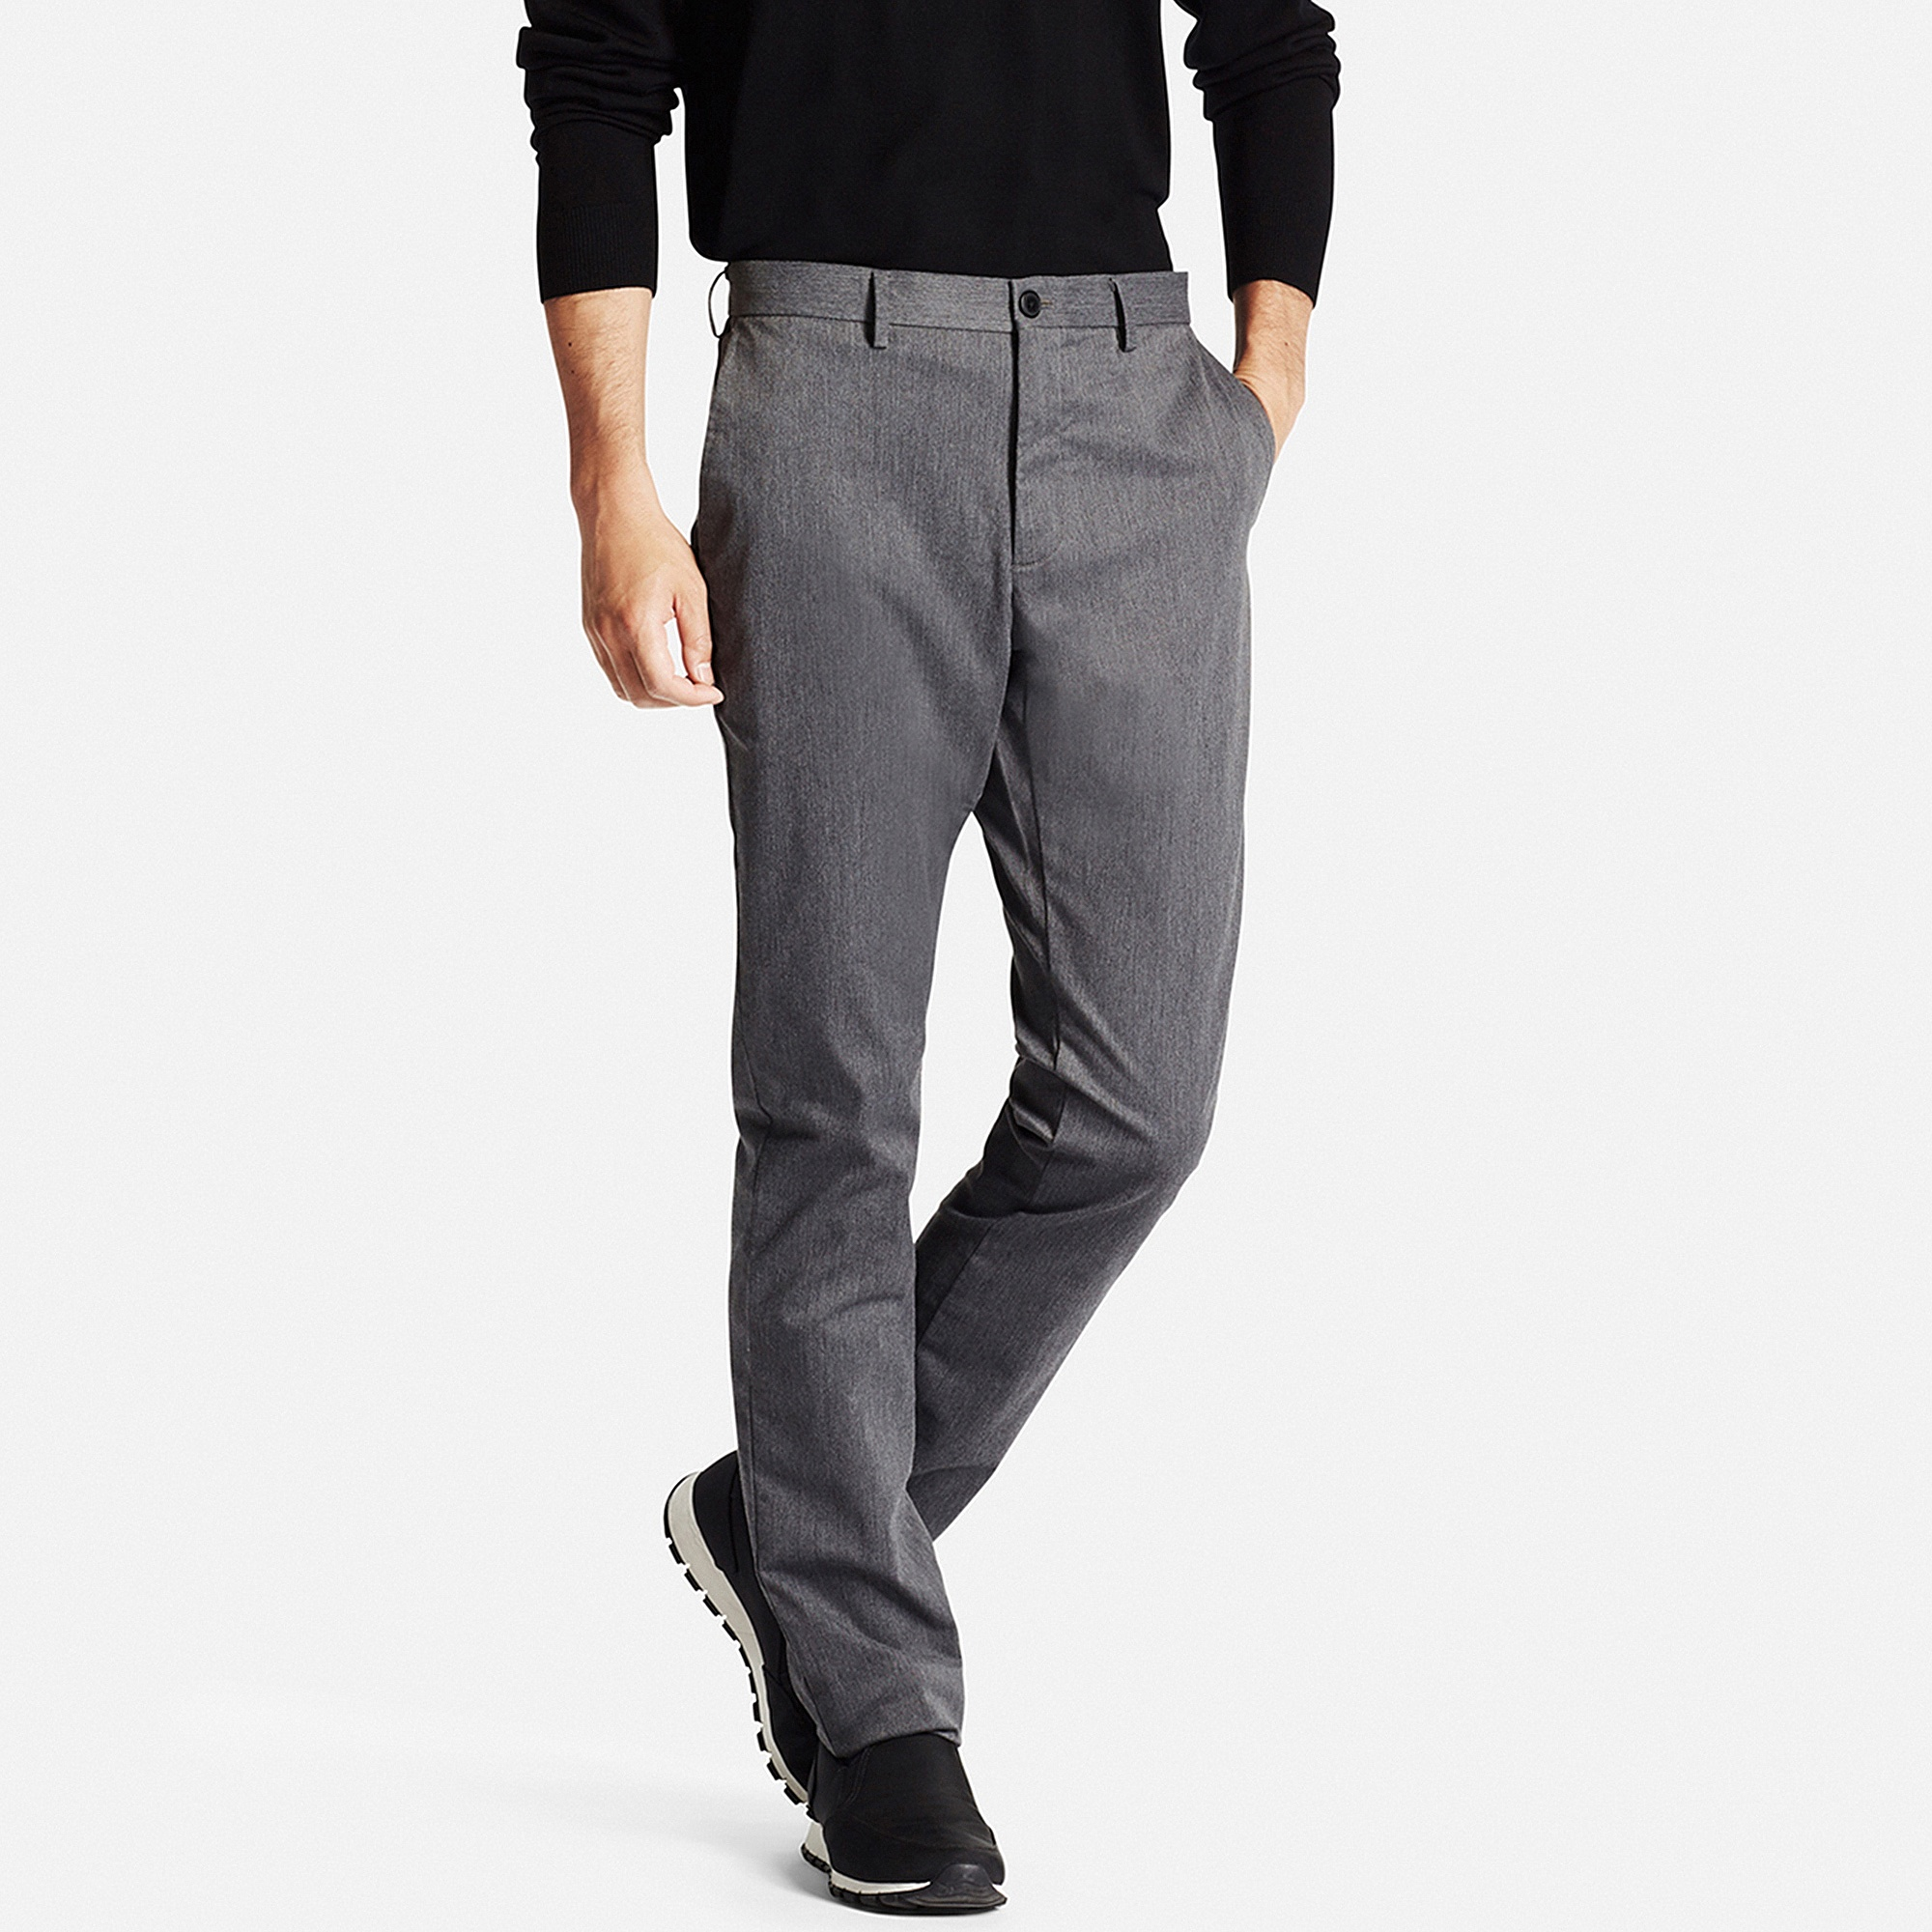 Uniqlo Slim Fit Chinos – summer dress pants for men